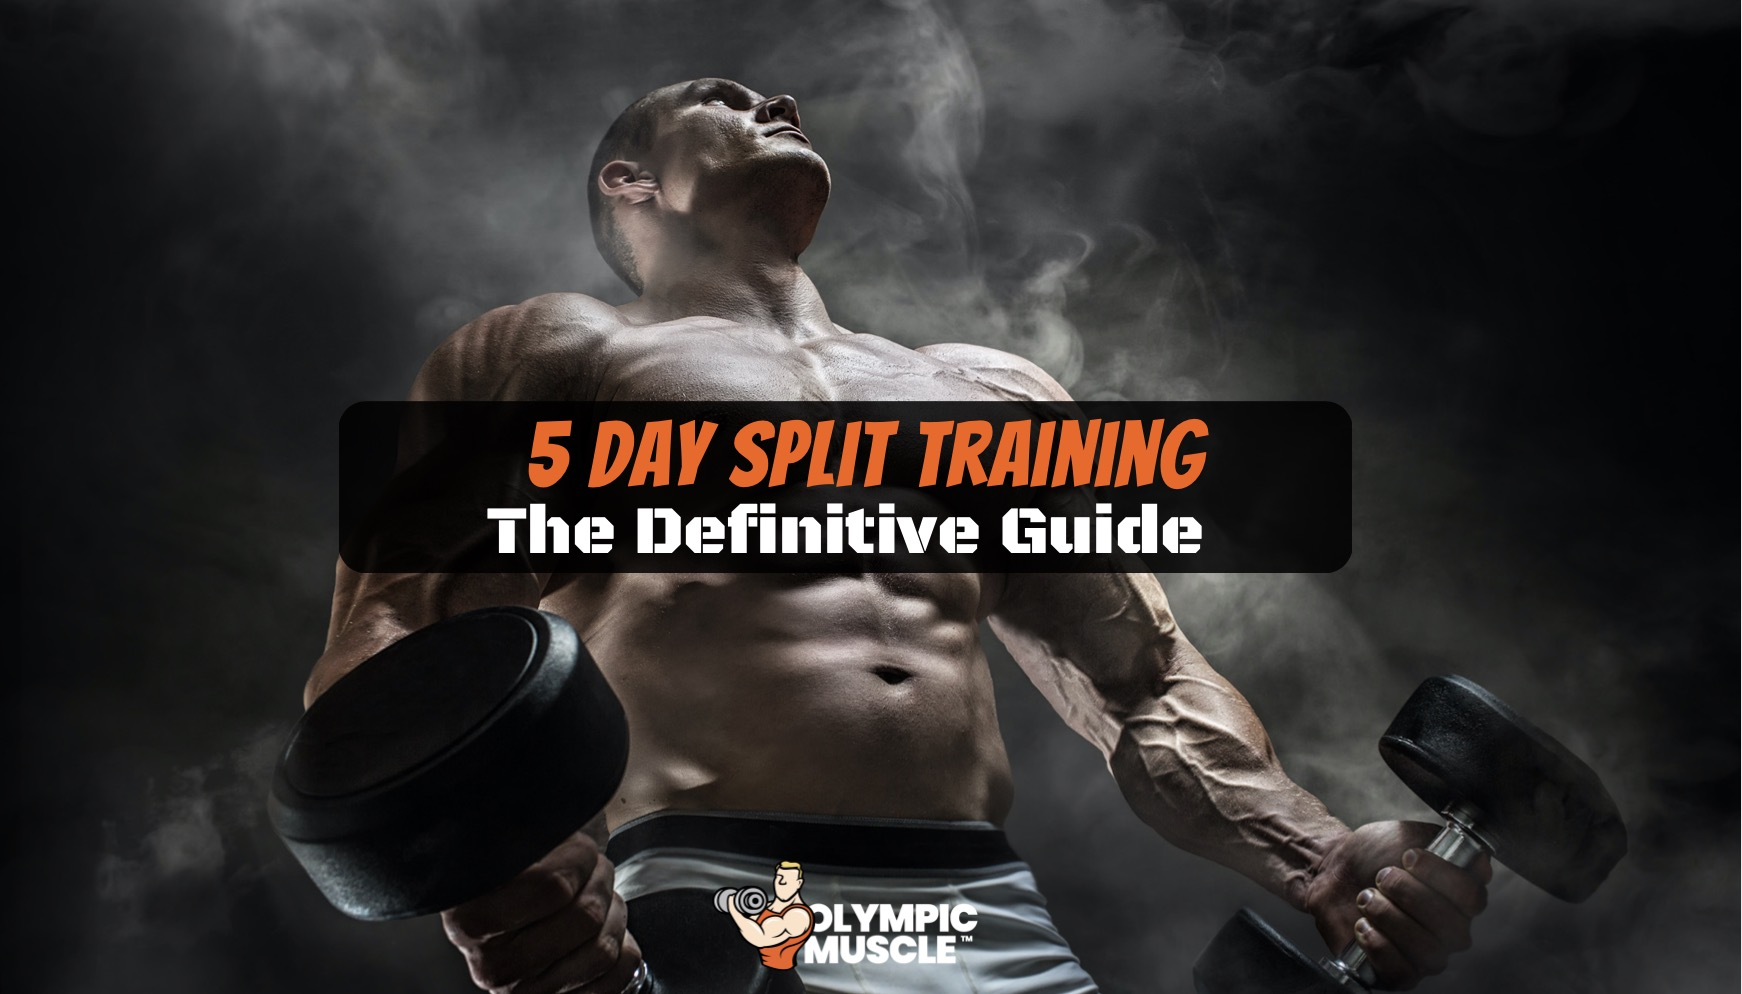 5-Day Workout Routine to Get Ripped | Complete Guide